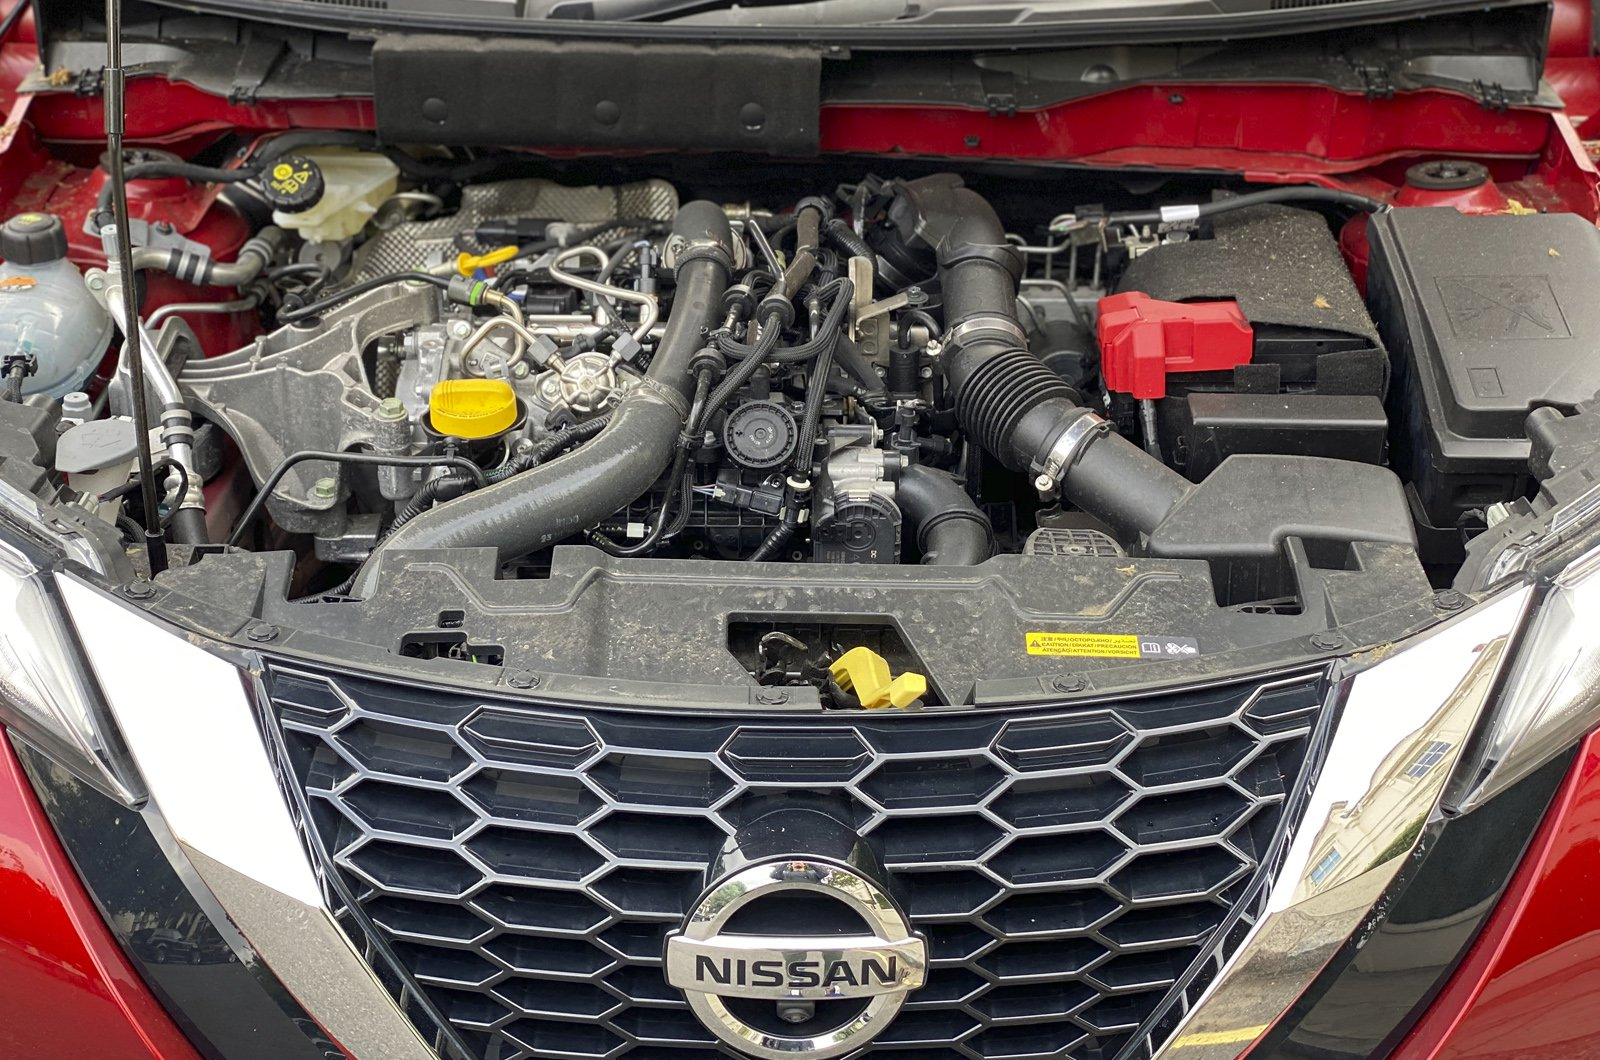 Nissan Juke long-term engine